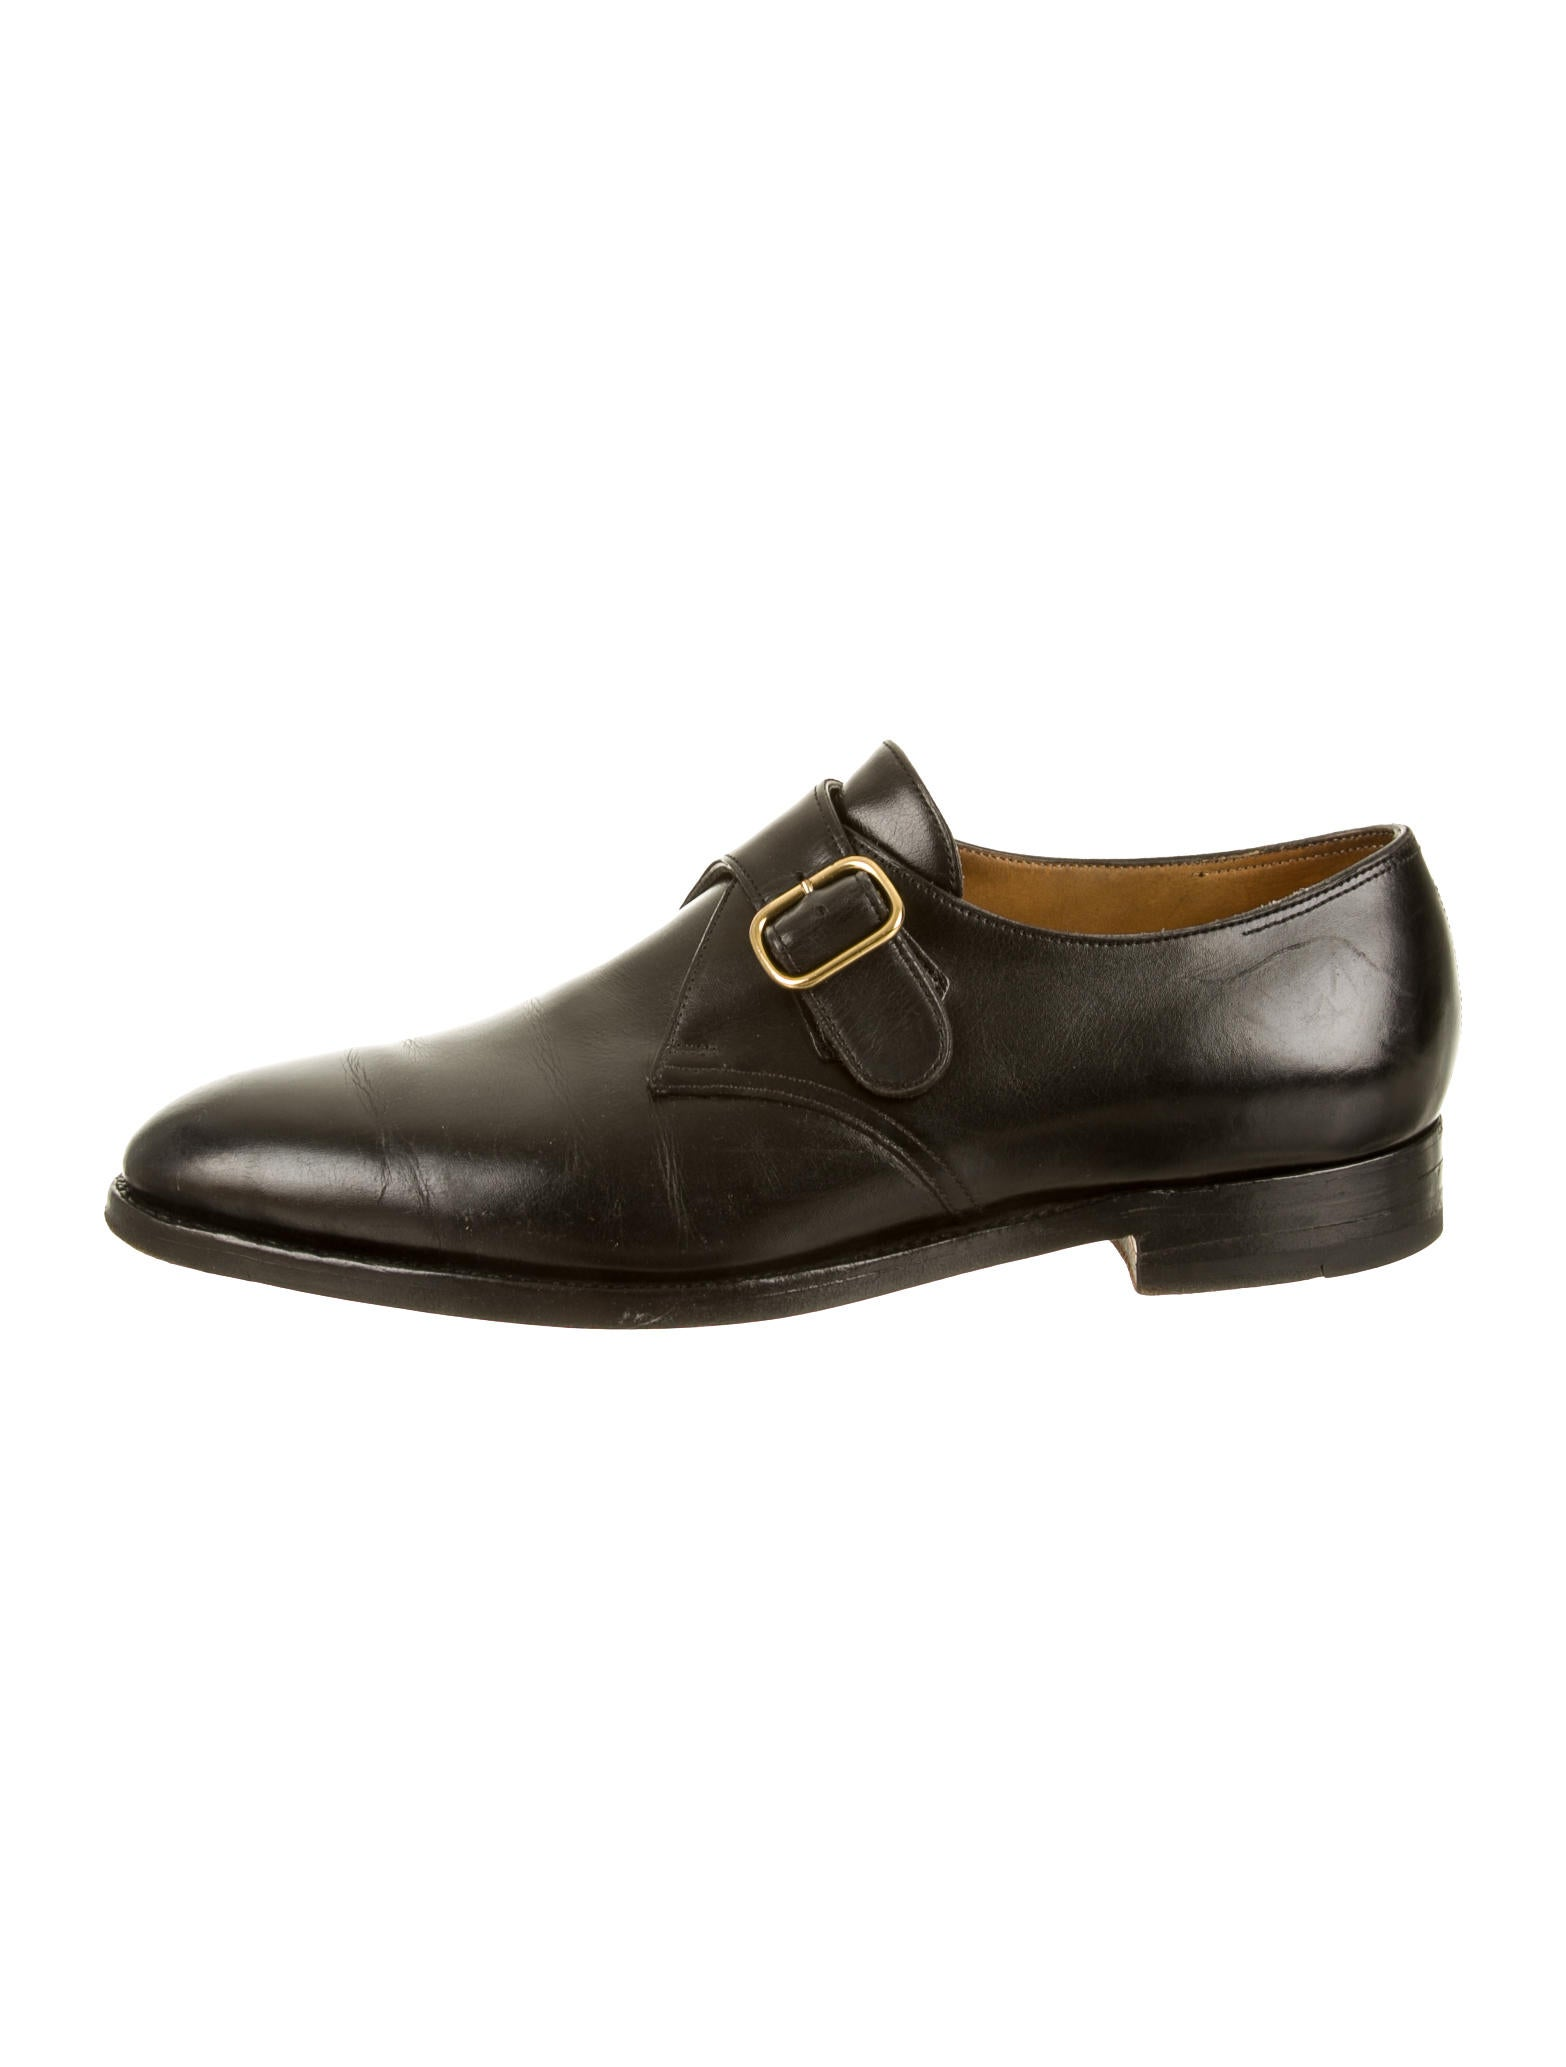 how to wear monk straps